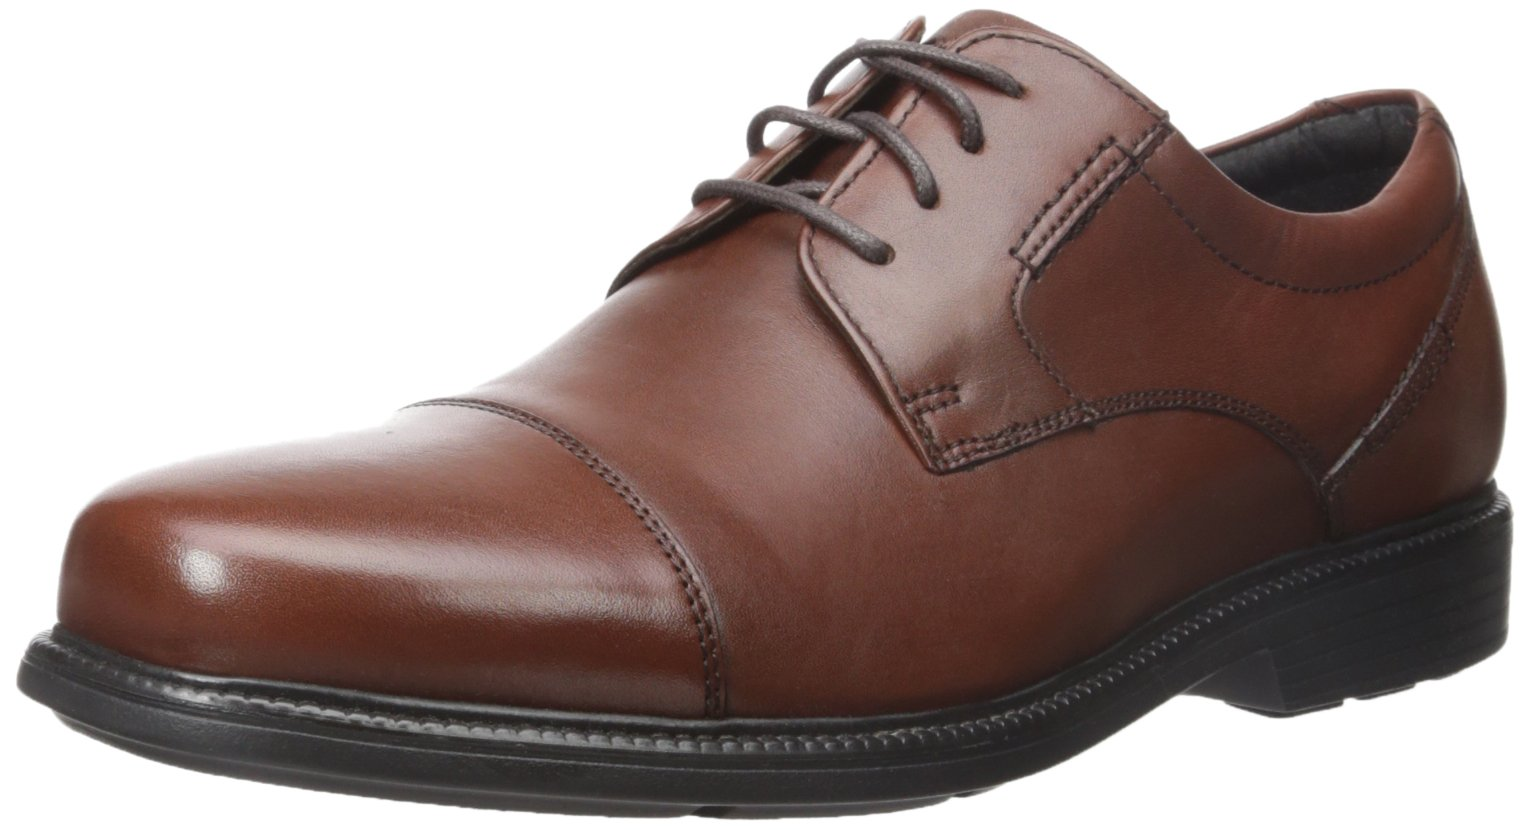 Rockport Men's Charles Road Cap Toe Oxford Tan II Leather 11.5 M (D)-11.5 M by Rockport